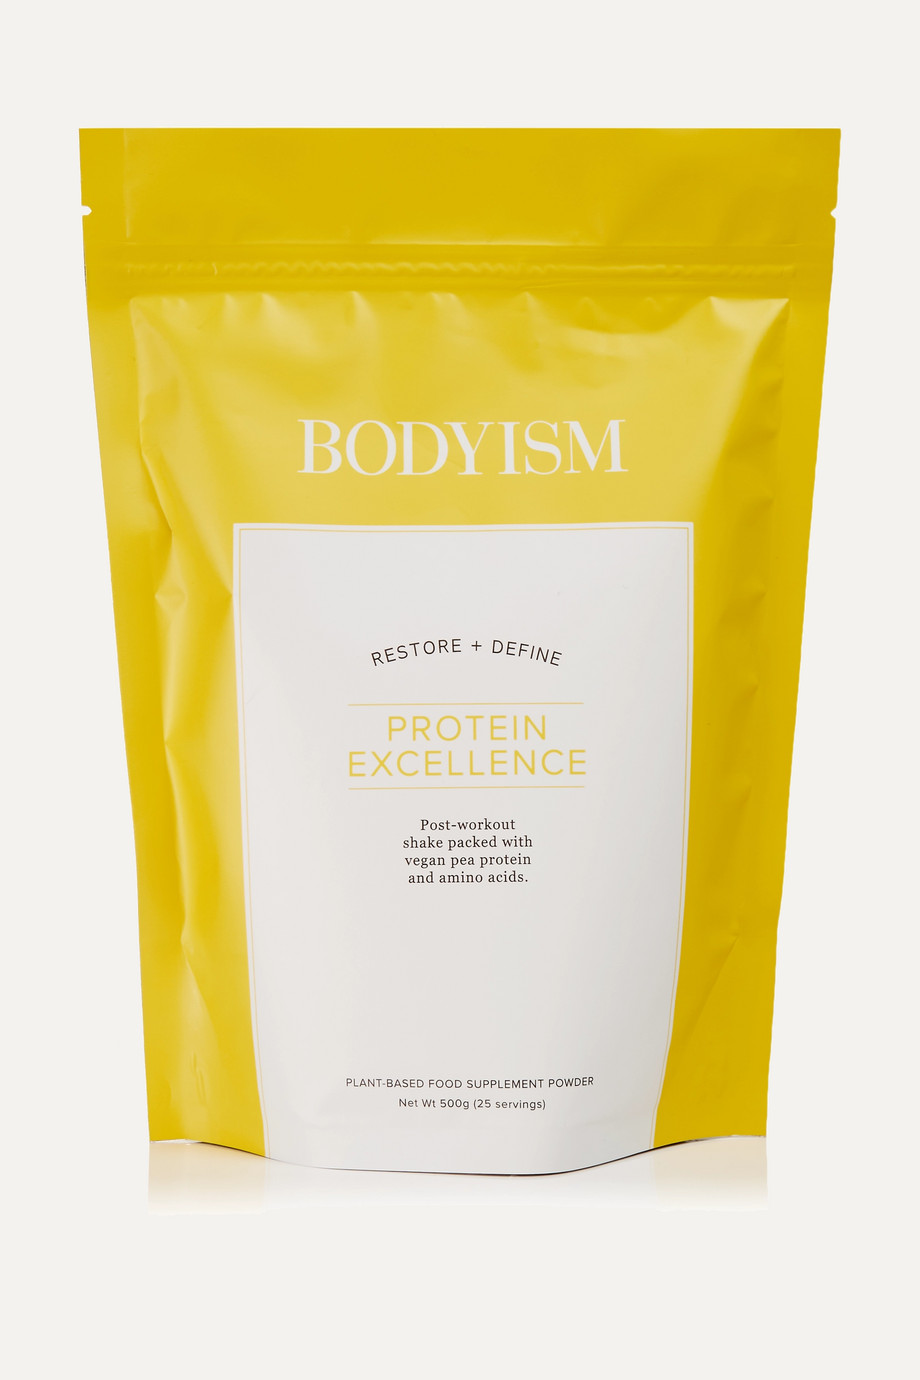 Protein Excellence Vanilla Supplement, 500g, by Bodyism's Clean and Lean